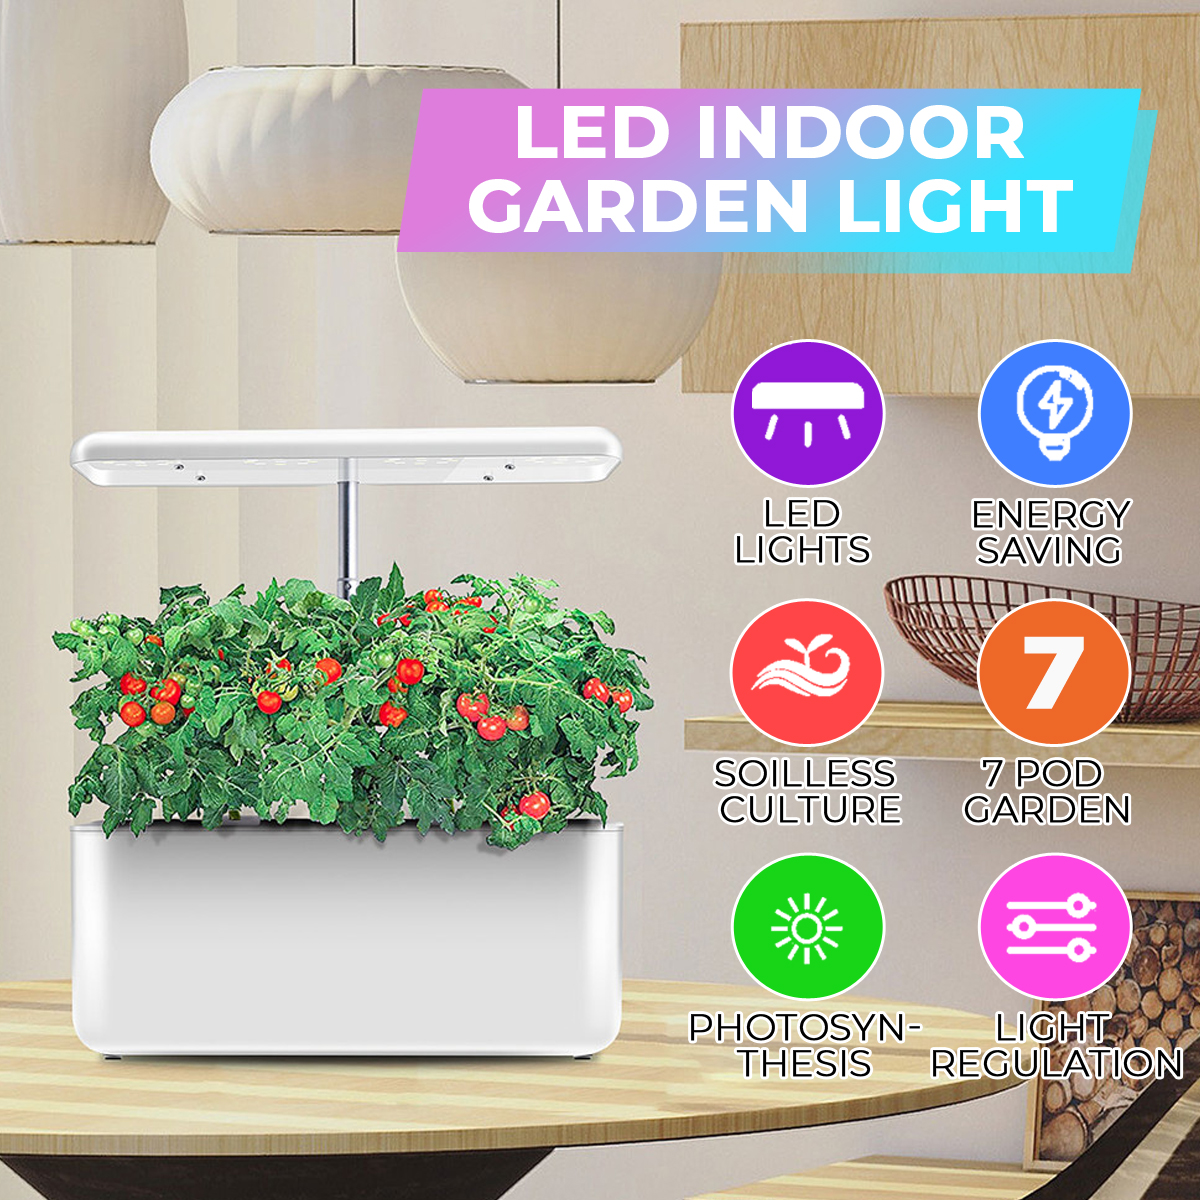 Ecoo Grower Igs 10 Indoor Garden Grow System Soil Free Indoor Gardening System 35w Indoor Led Plant Grow Lighting Desk Lamp Smart Hydroponic Herb Garden Kit White Buy Products Online With Ubuy Thailand In Affordable